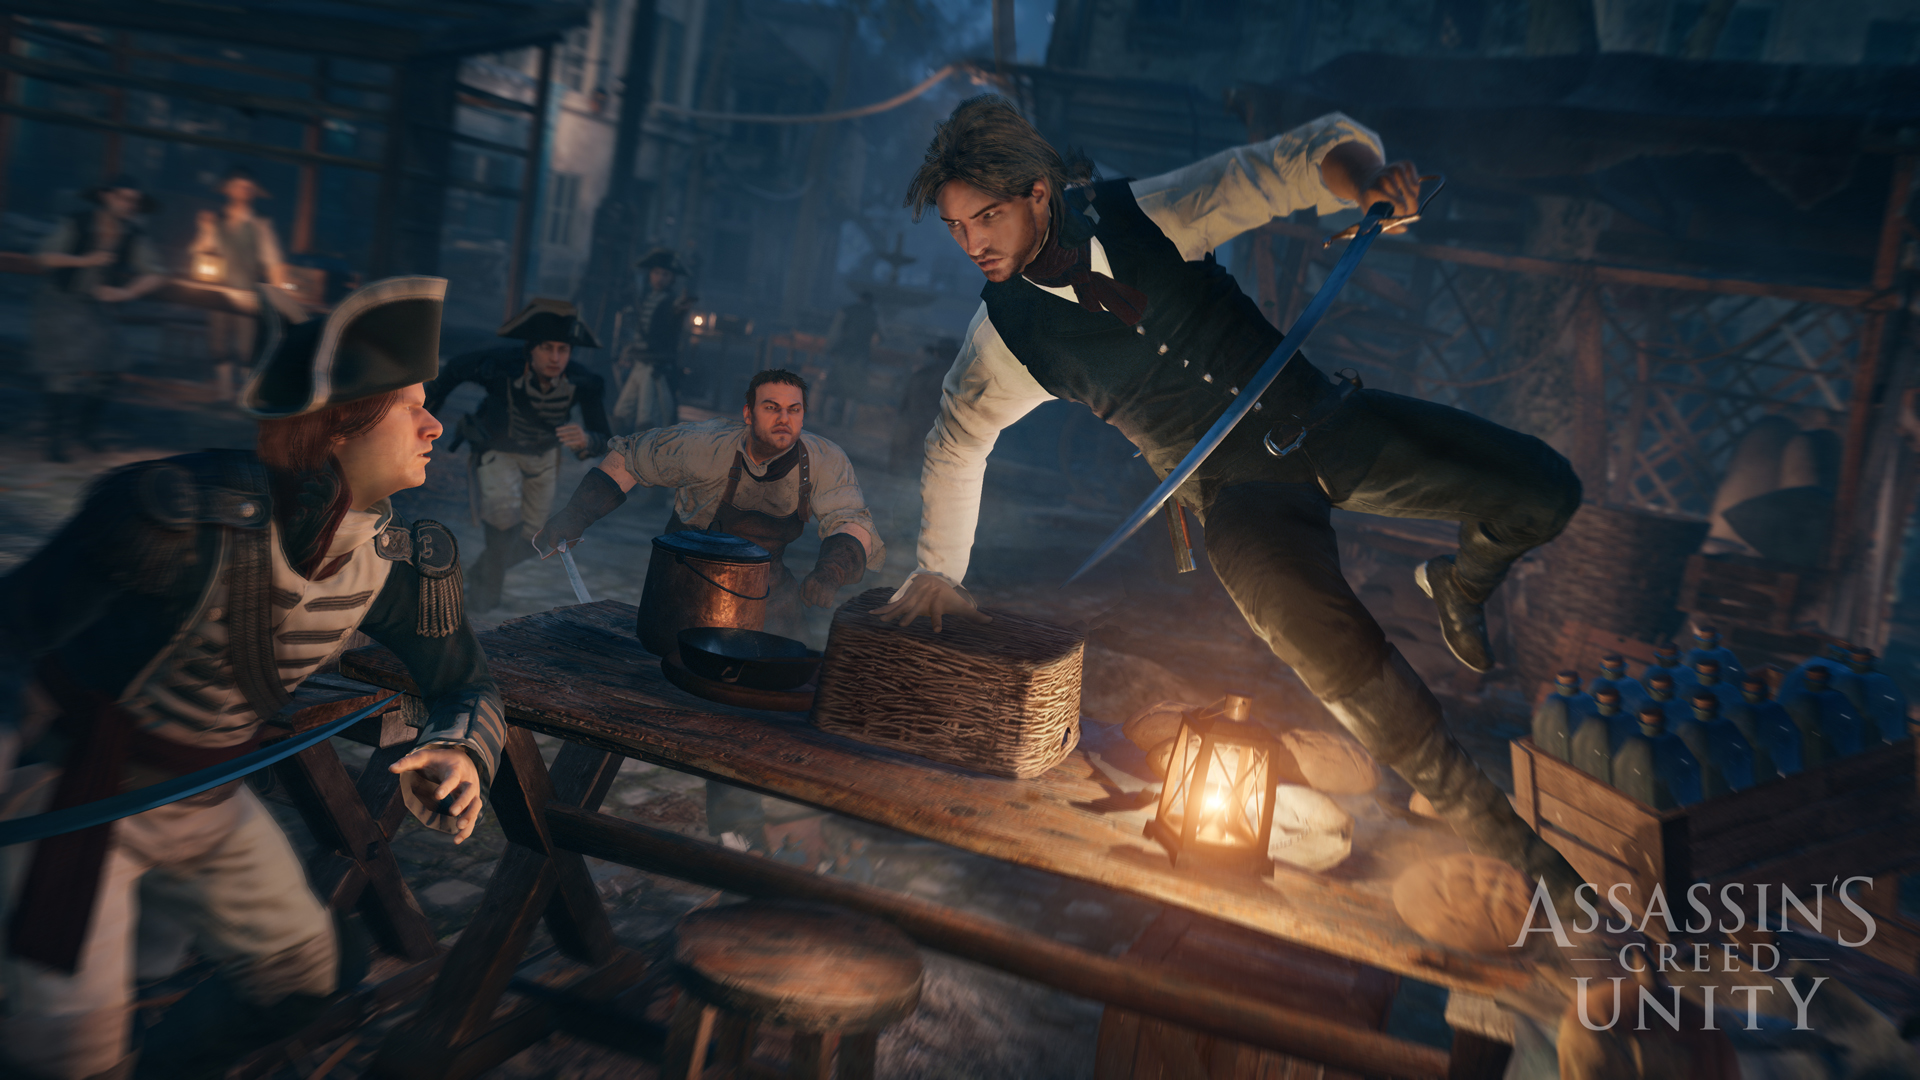 2642729-assassins_creed_unity_sp_arnoescaping_1409669061